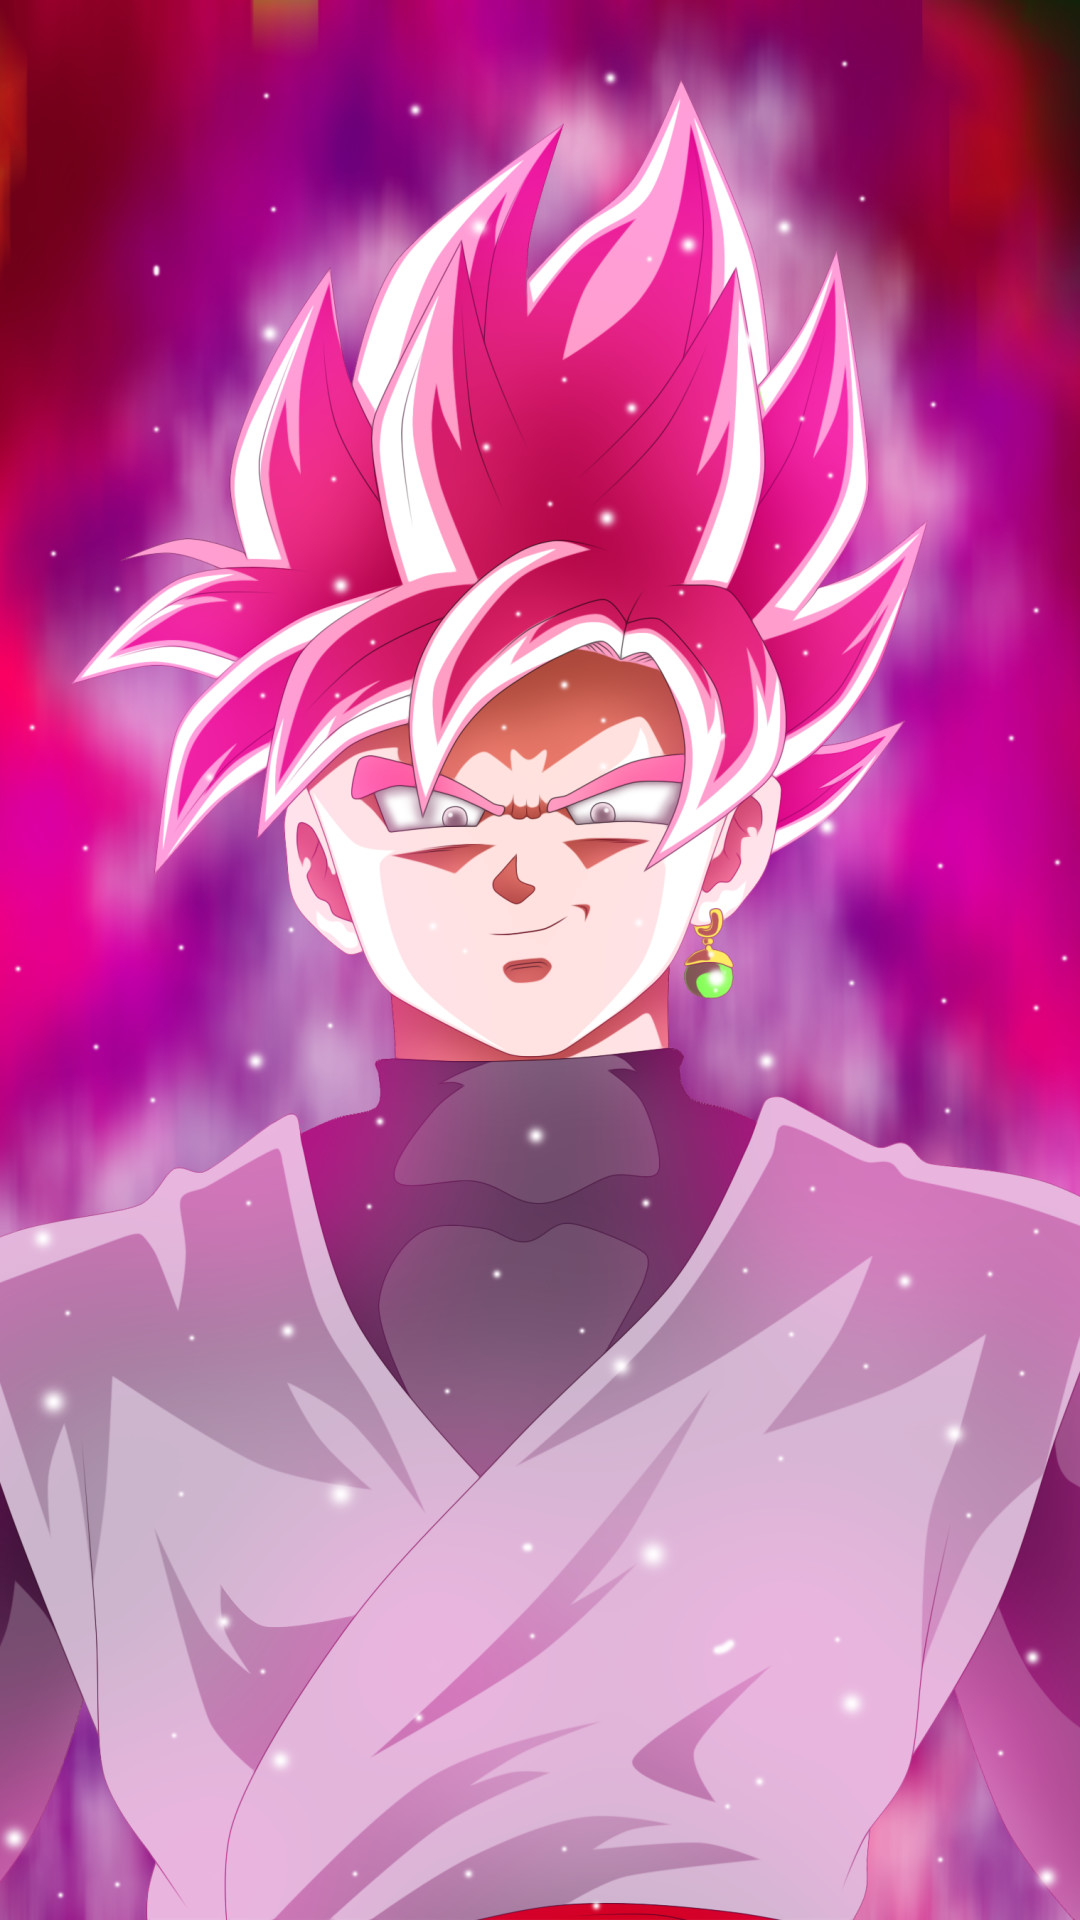 Goku Black Wallpaper 4k Posted By Zoey Anderson